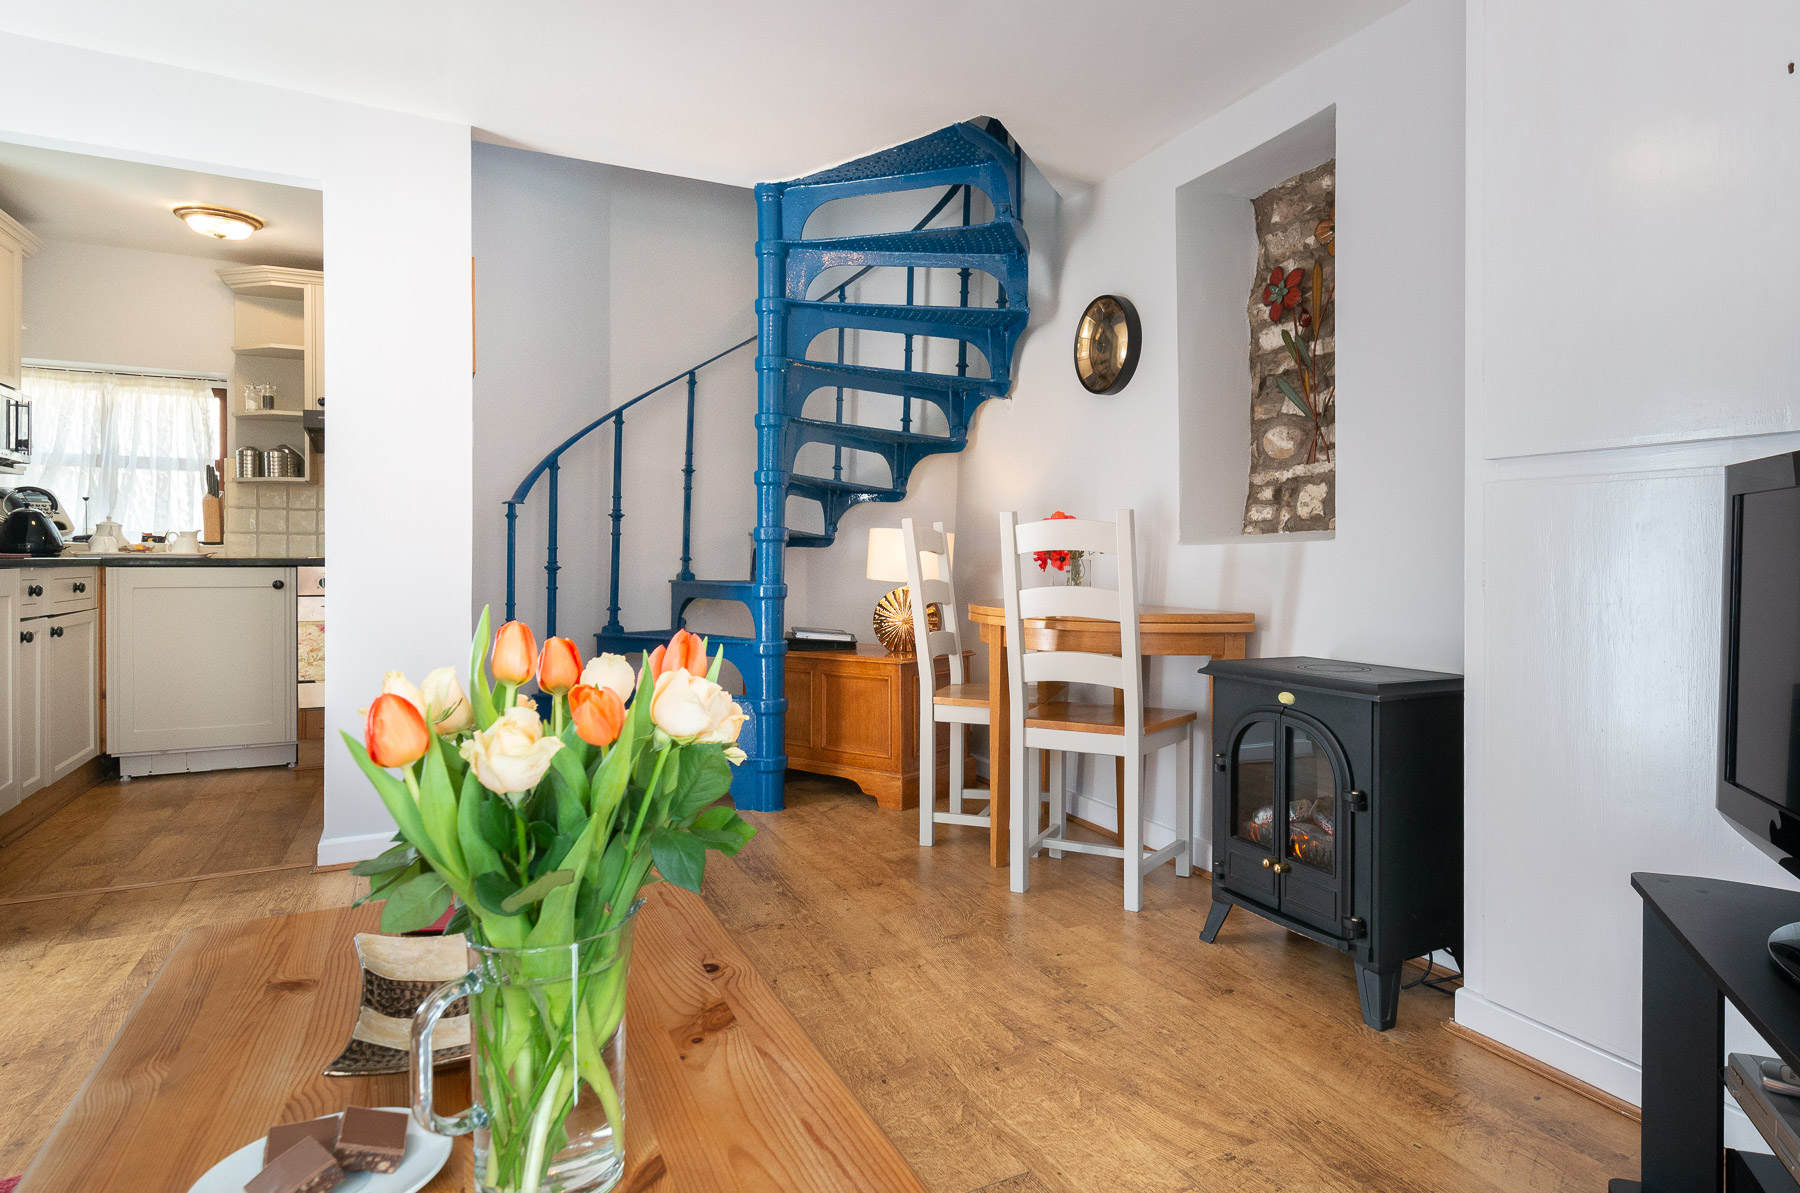 Courtyard Cottage Lounge and spiral stairs. A pet friendly holiday cottage.